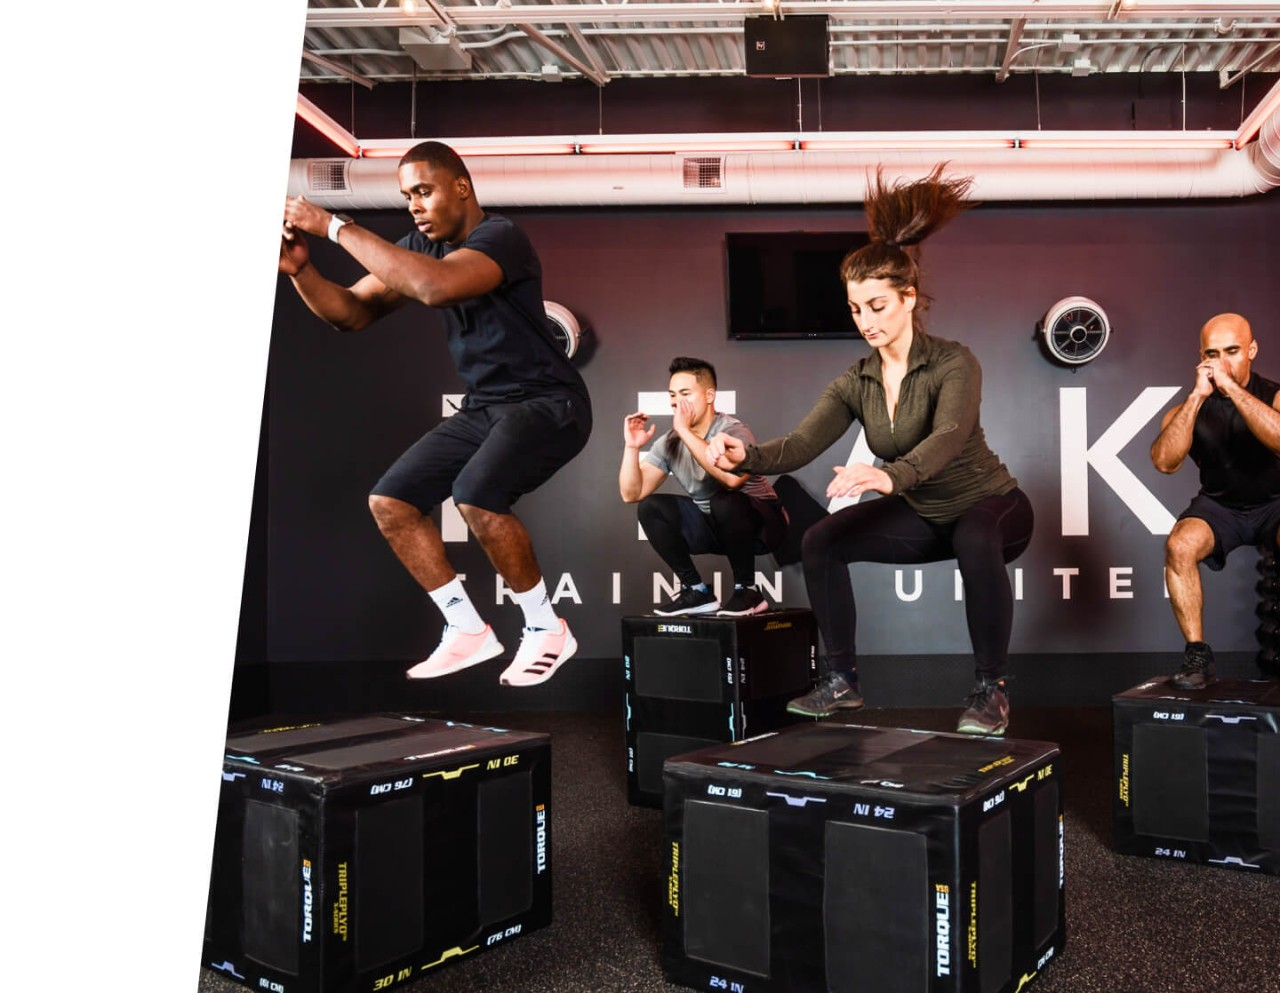 Four people doing box jumps onto black boxes in PEAK training space